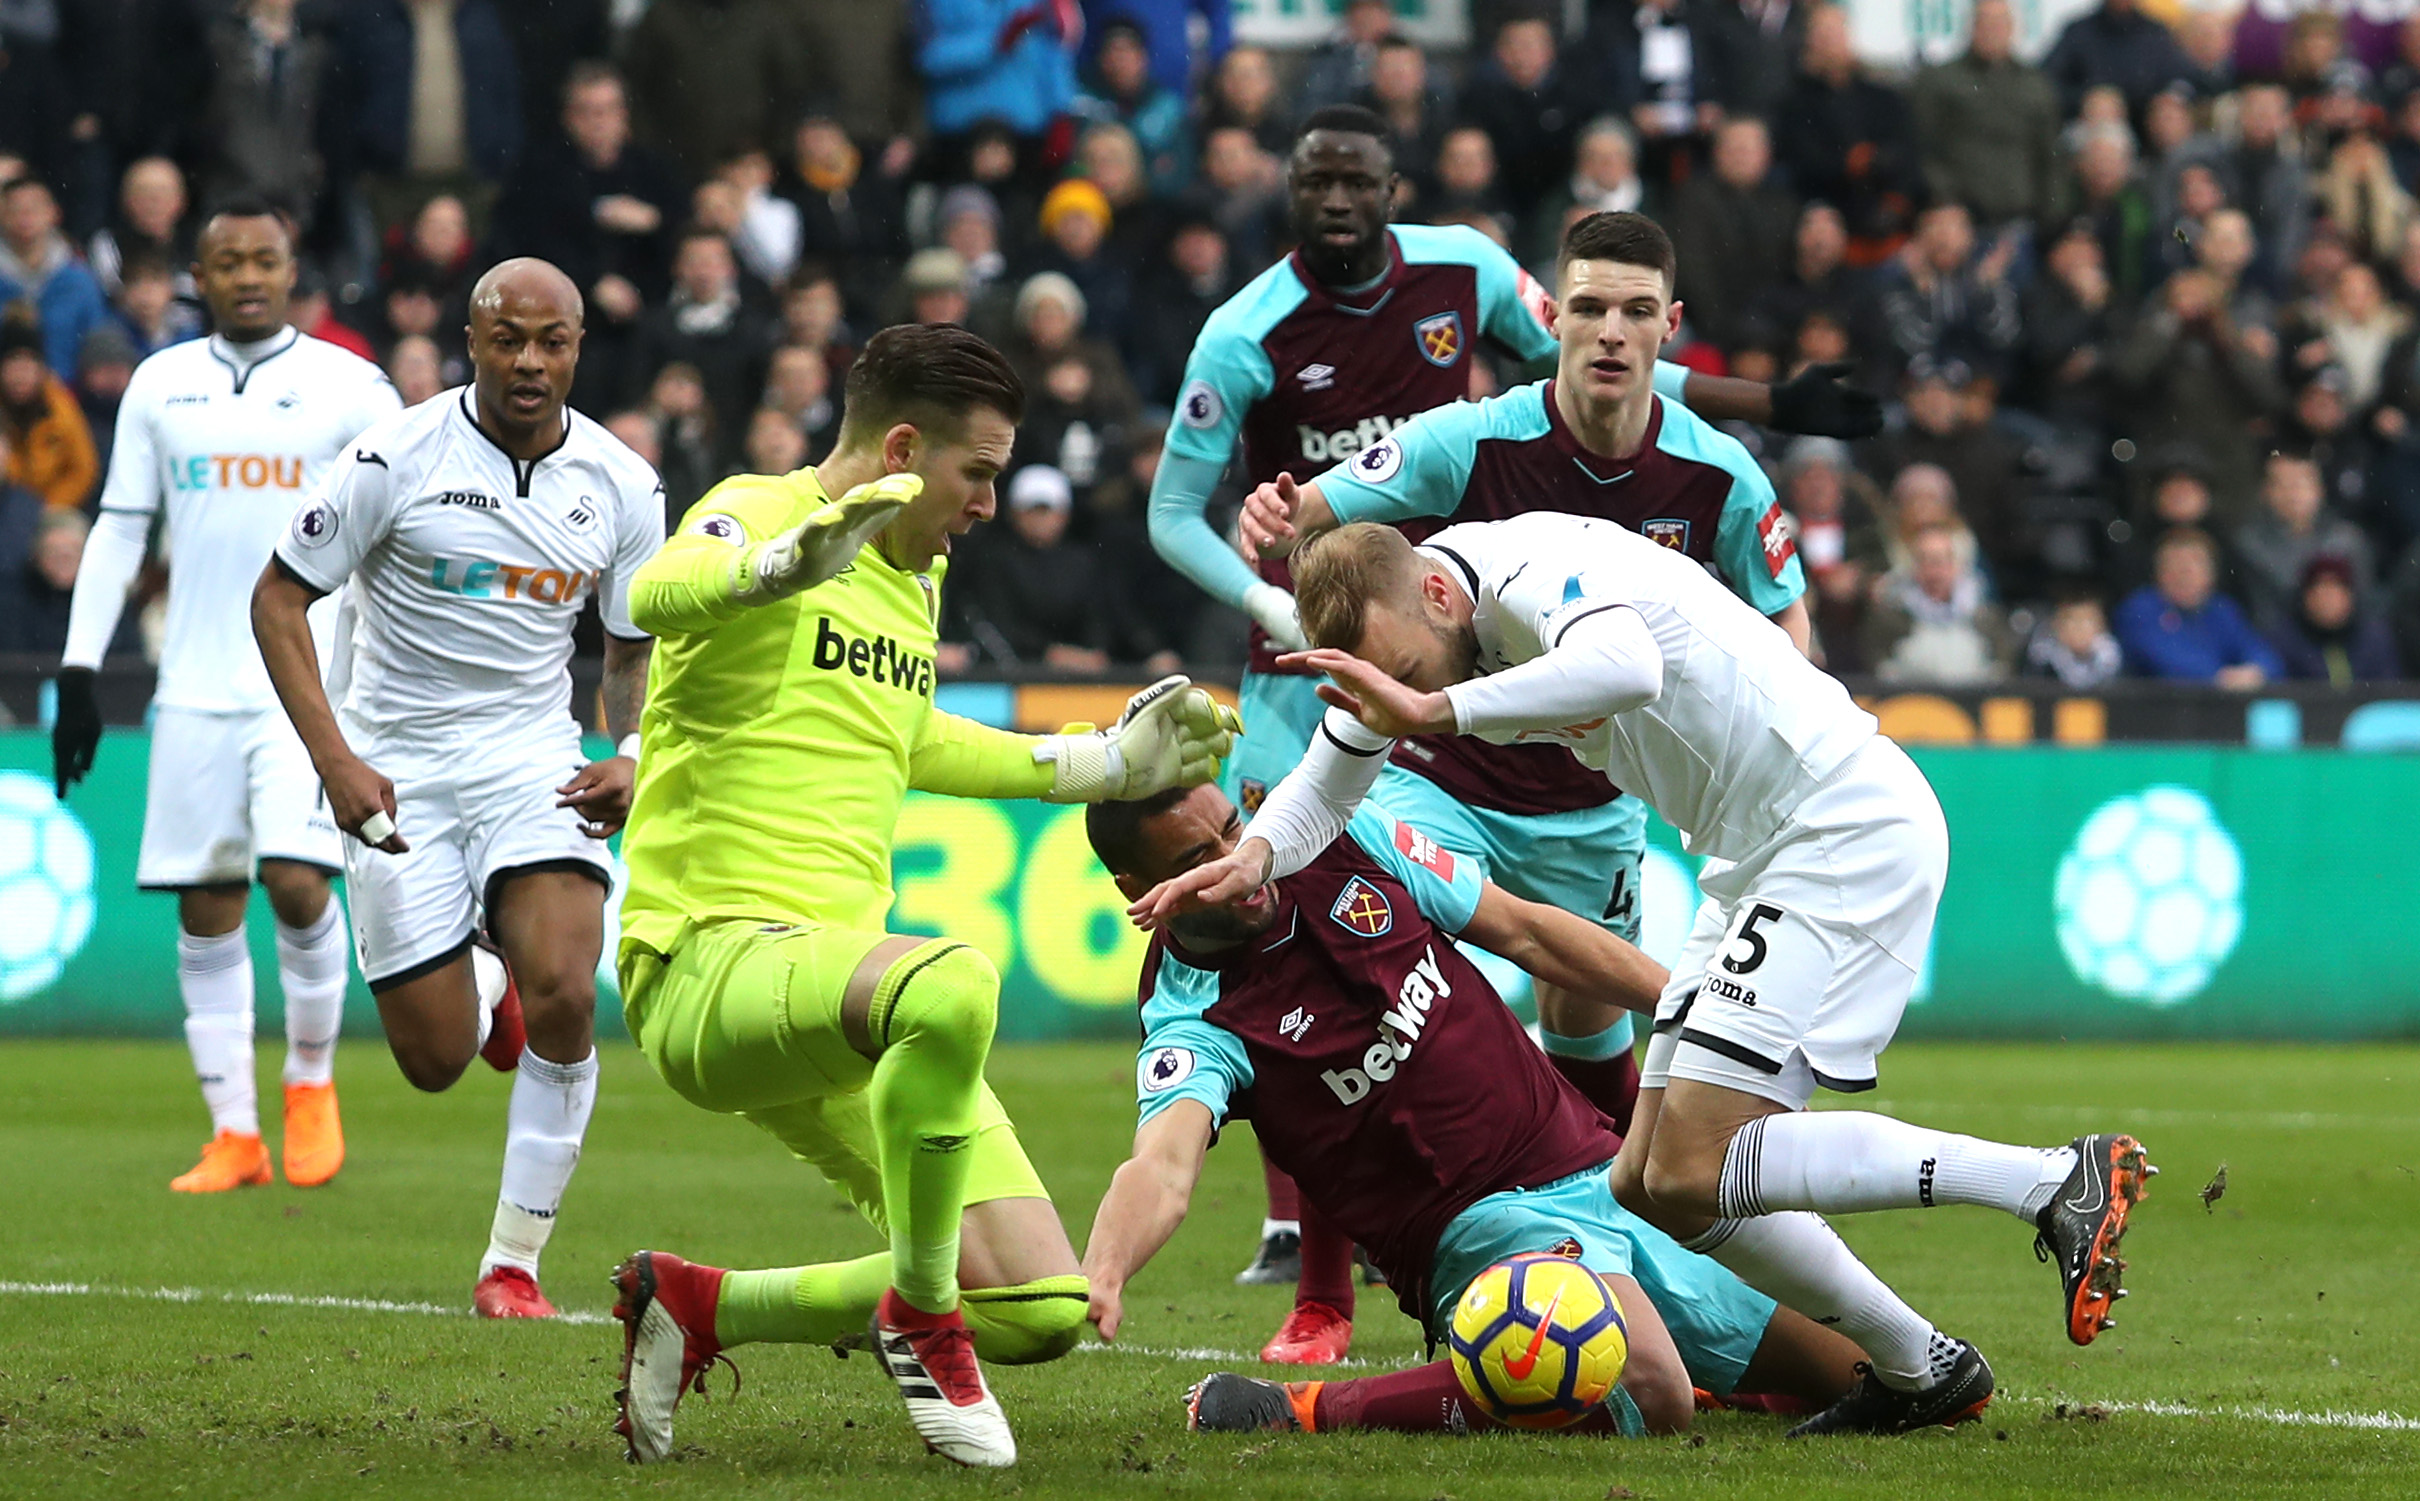 Winston Reid and Sam Byram set to miss rest of season